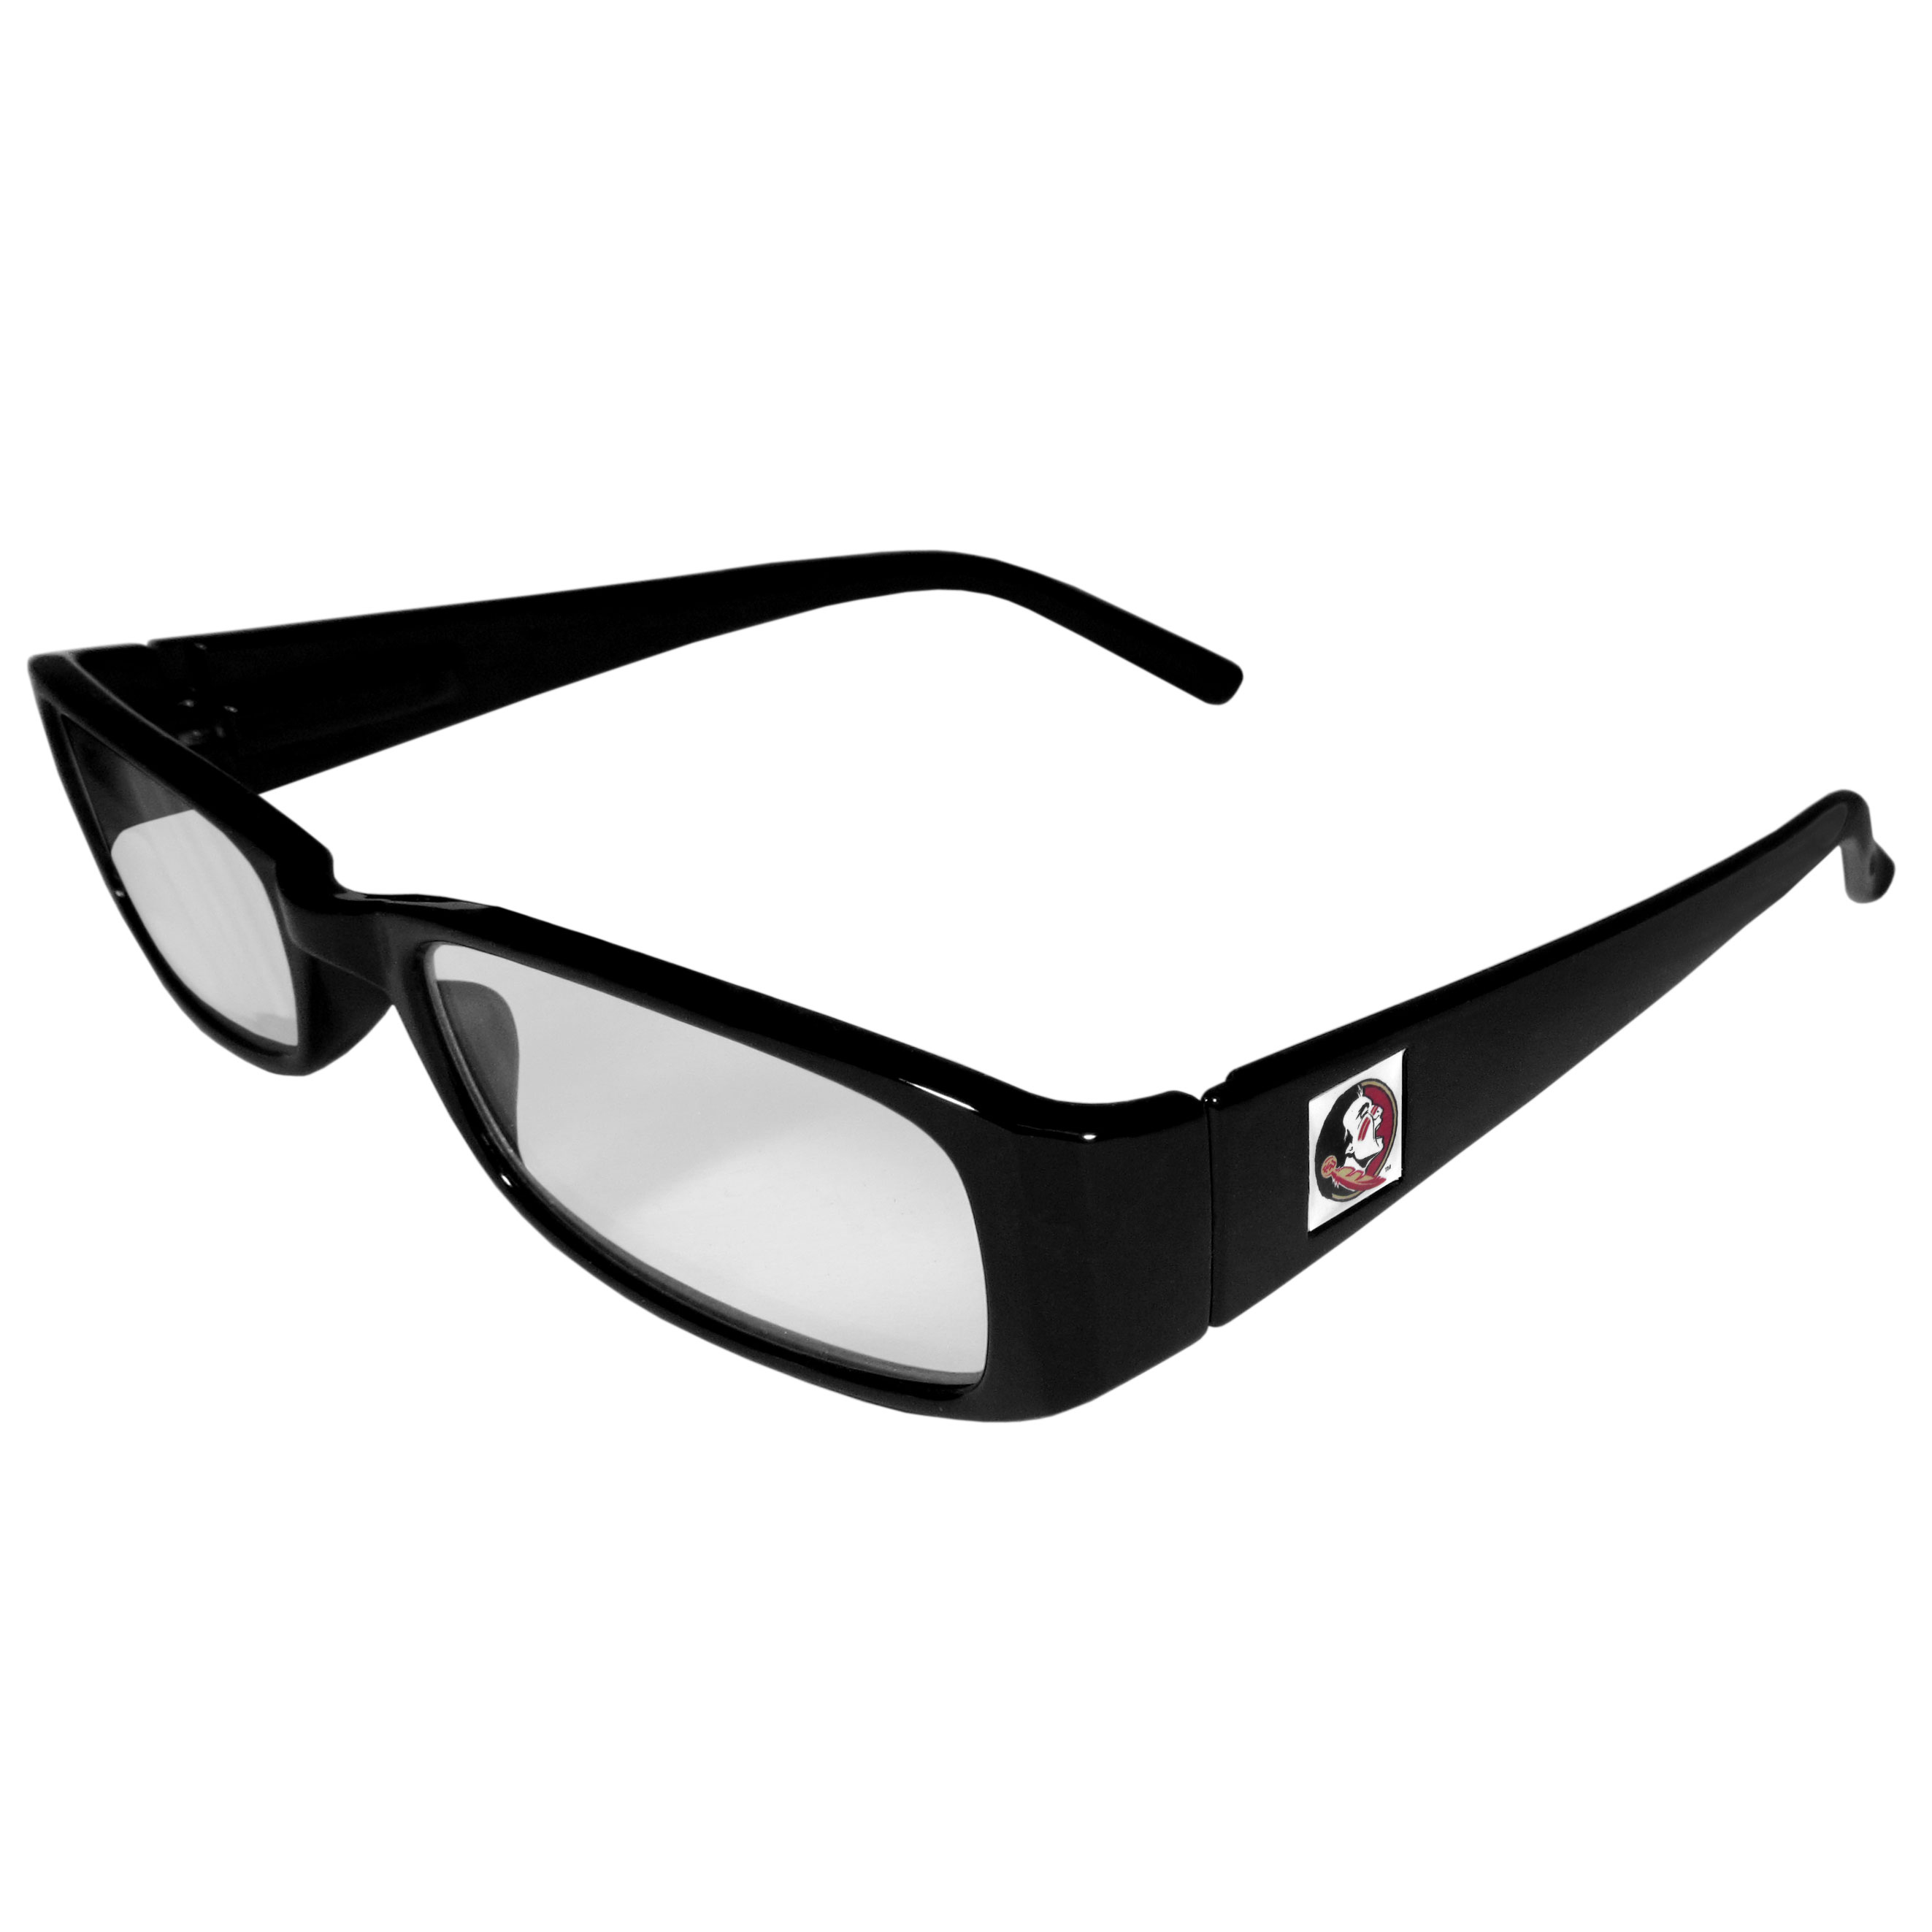 Florida St. Seminoles Black Reading Glasses +1.25 - Our Florida St. Seminoles reading glasses are 5.25 inches wide and feature the team logo on each arm. Magnification Power 1.25